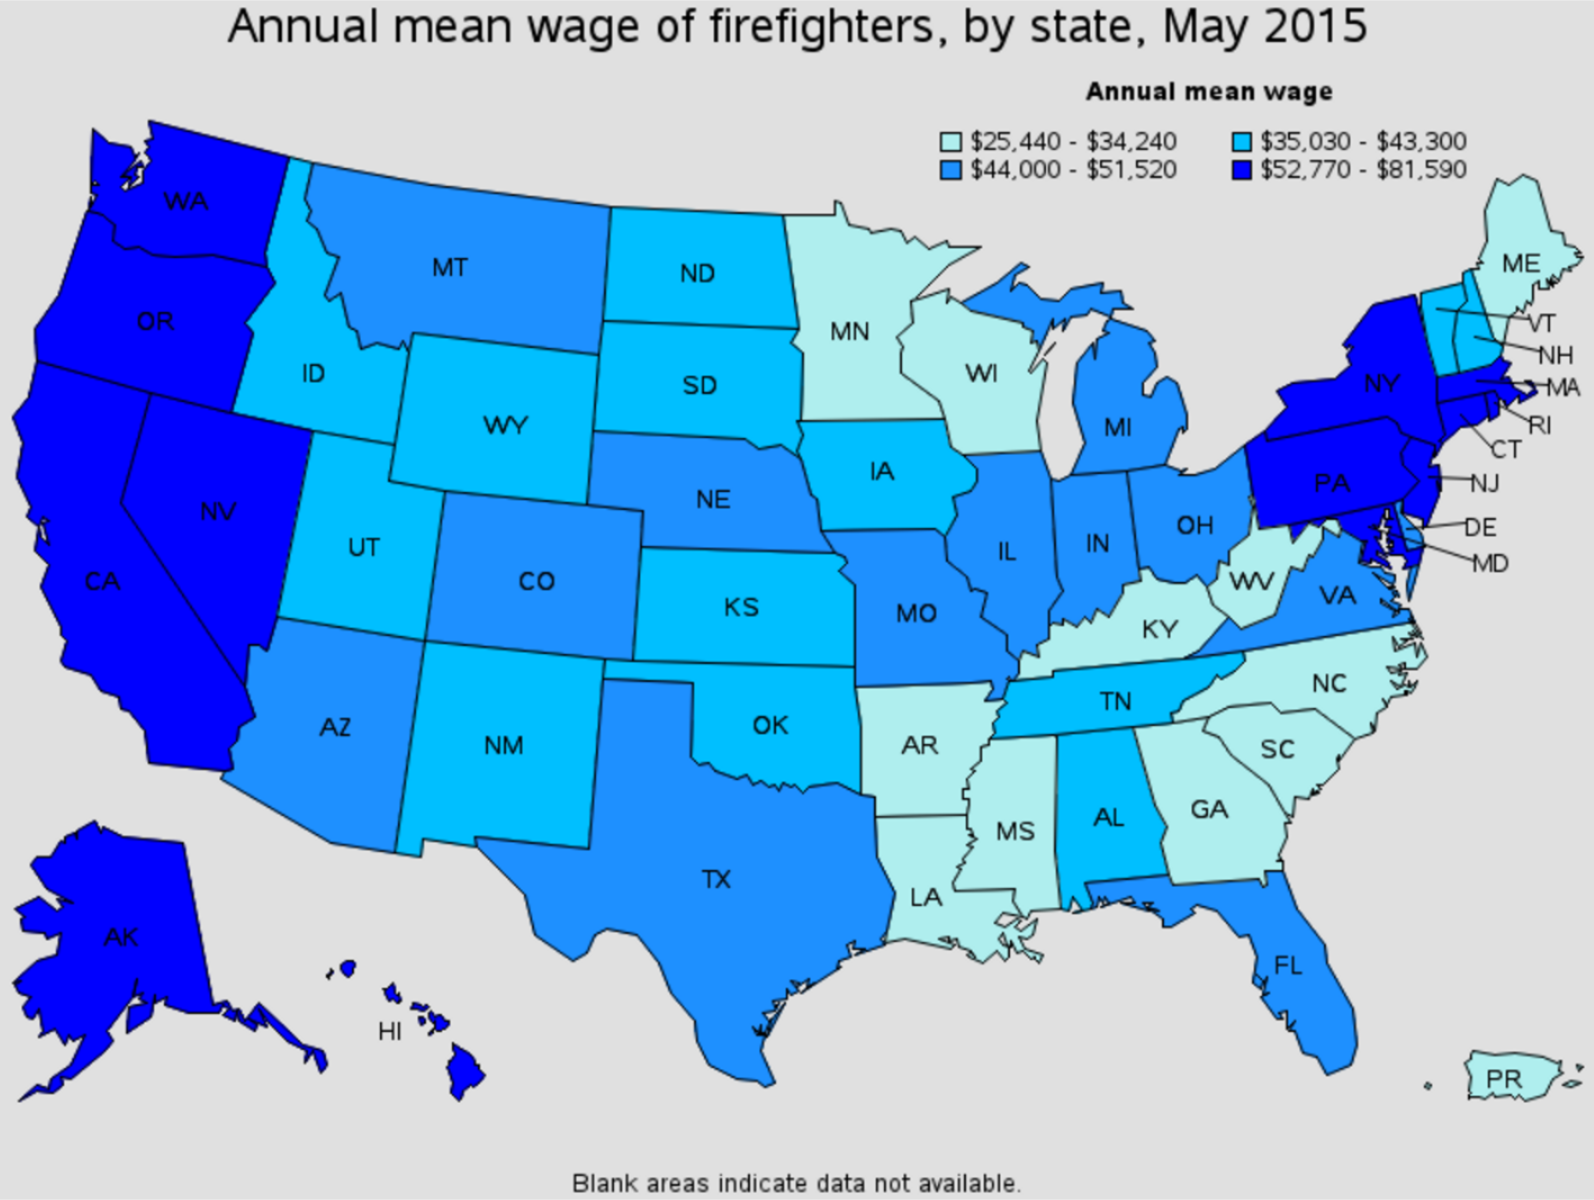 firefighter average salary by state Granbury Texas